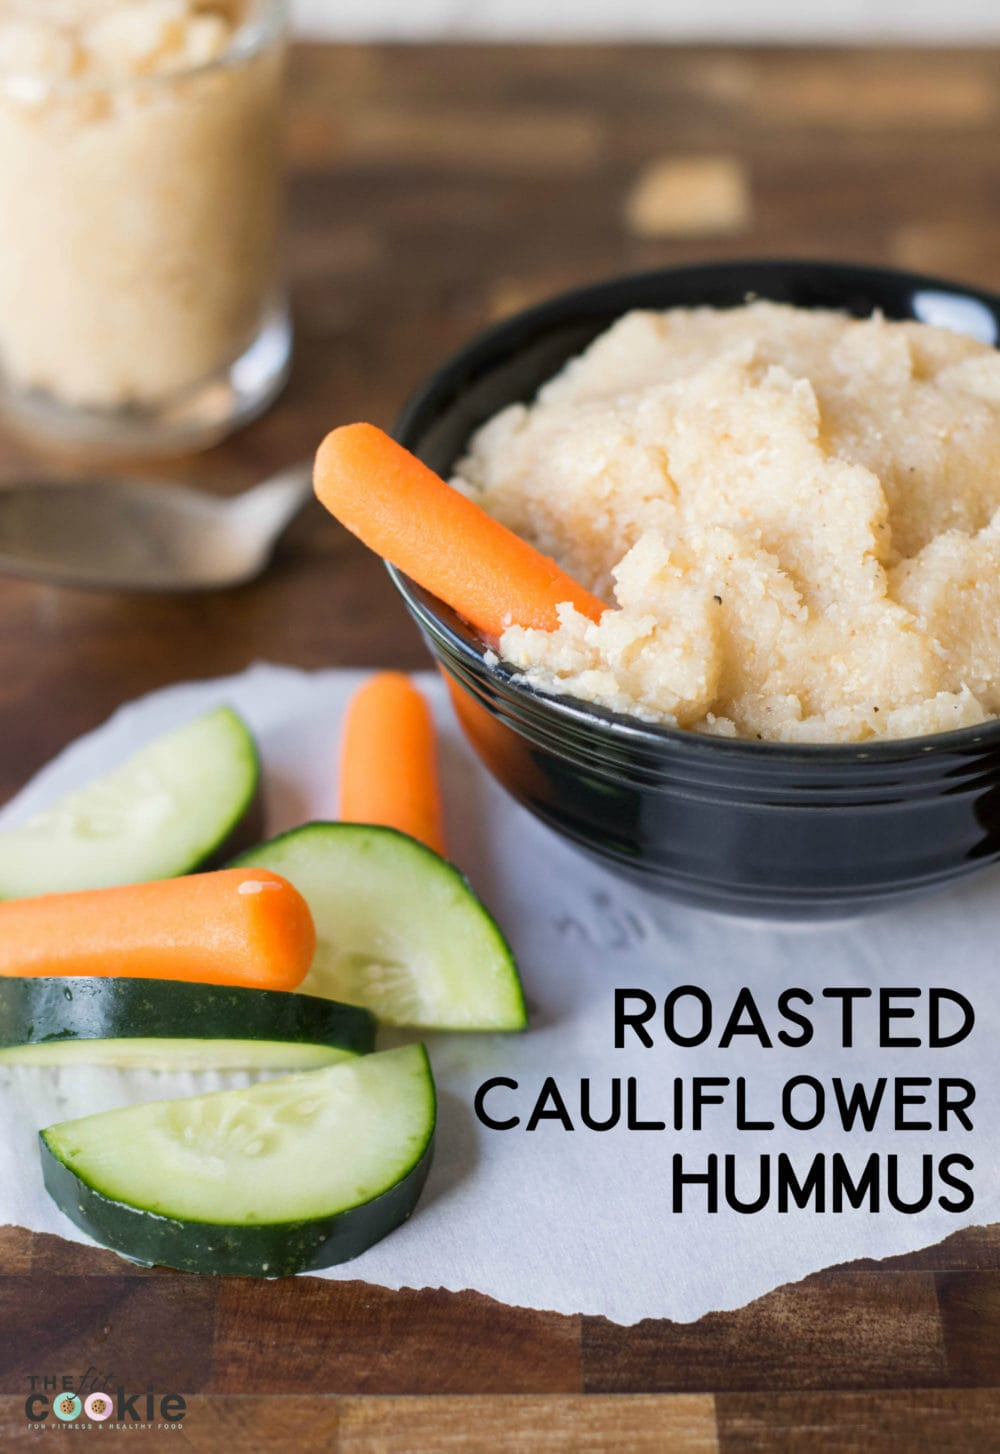 "Missing hummus? If you are on a special diet, then beans might be off the menu, but you can still make some hummus at home! Try this low-carb, paleo, and vegan Roasted Cauliflower Hummus from Danielle Gaebel's book ""Good Food for Everyone"" - @TheFitCookie #paleo #lowcarb"